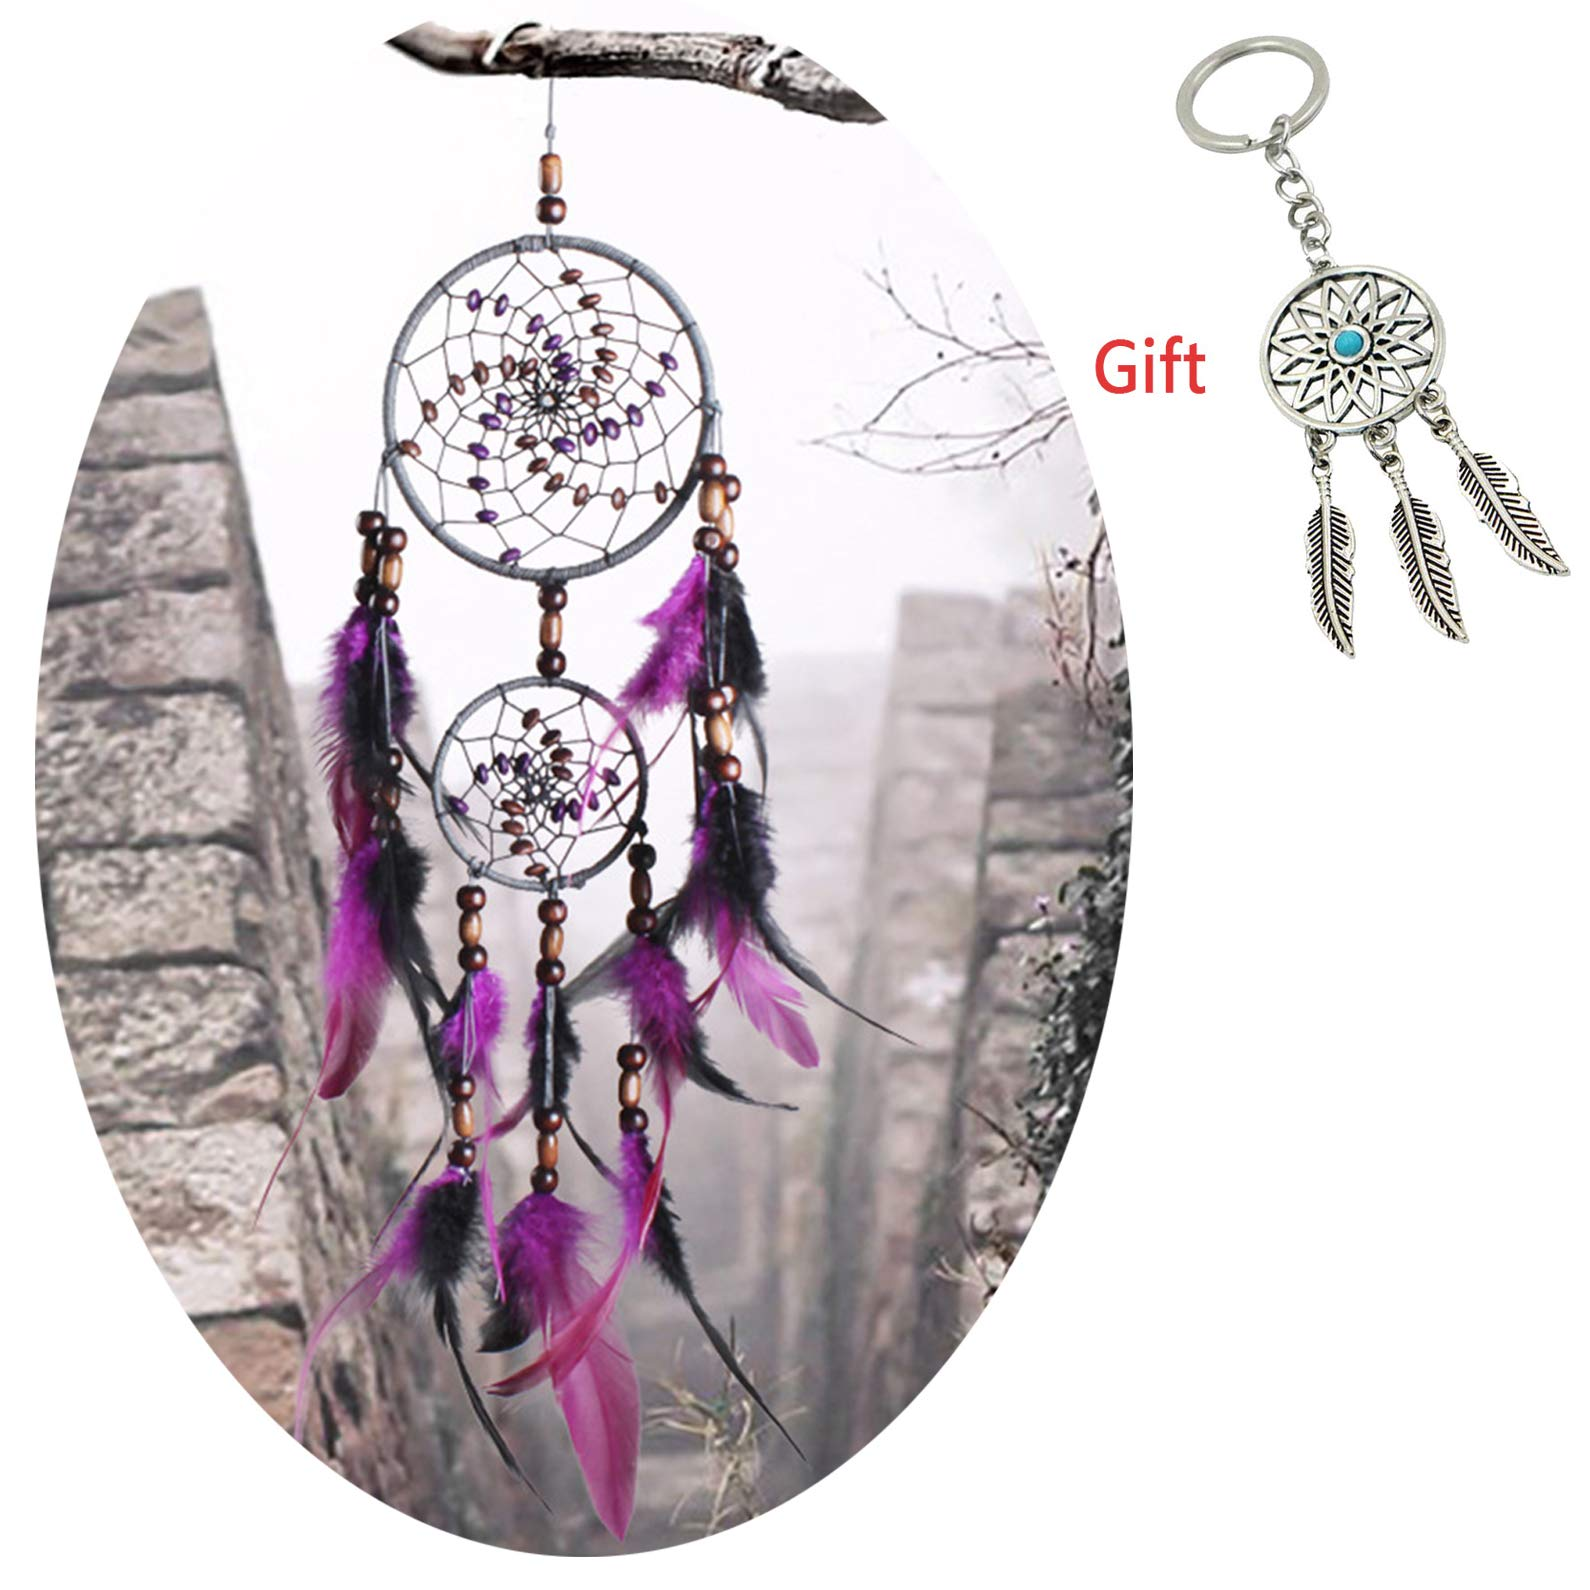 AWAYTR Dream Catchers Gift Handmade Decoration - Caught Dreams Dream Catcher Net for Wall Hanging Ornament (Purple&Black)